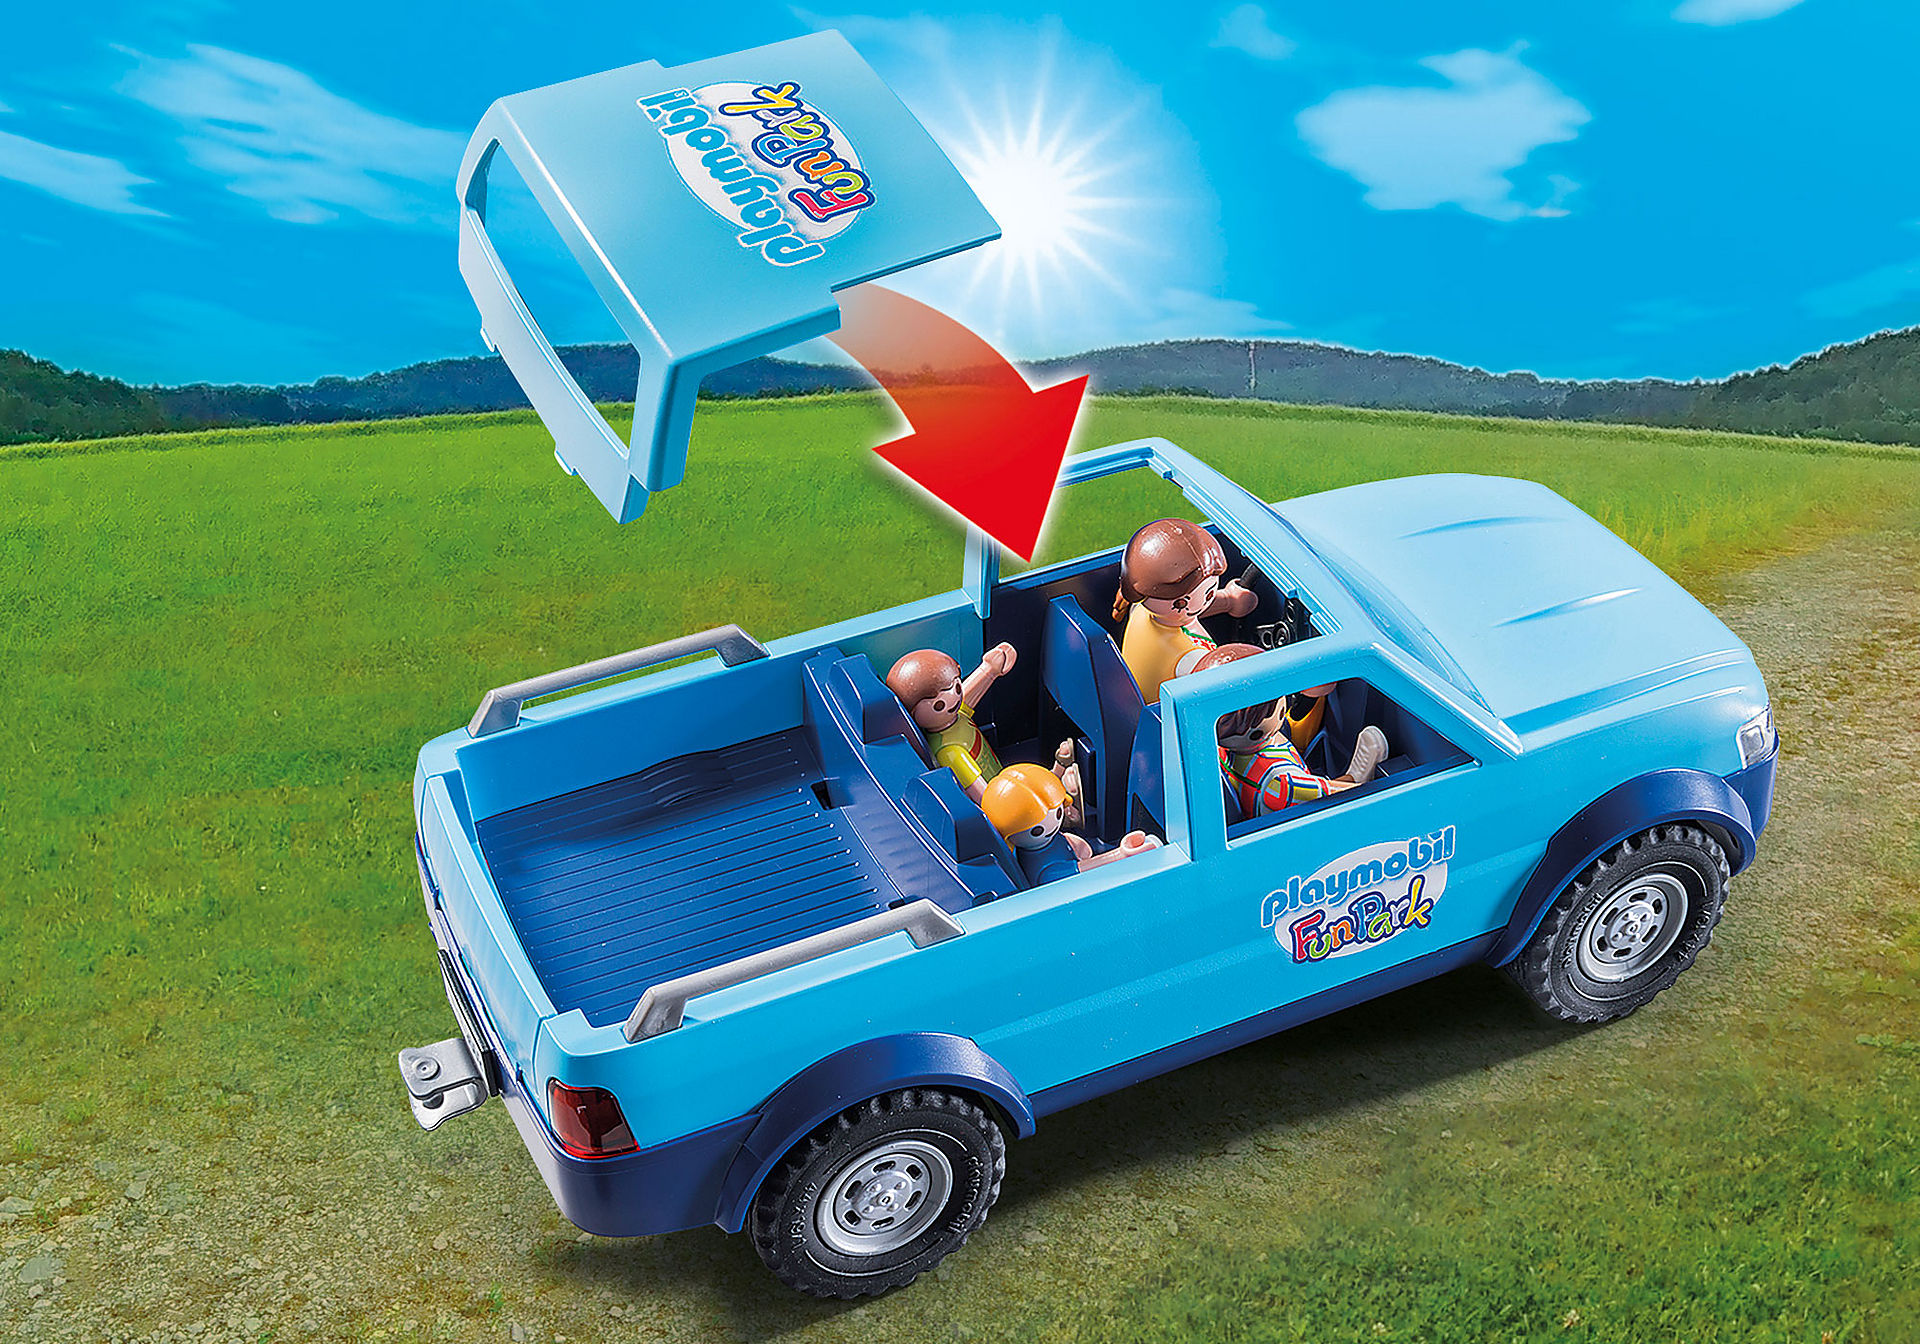 http://media.playmobil.com/i/playmobil/9502_product_extra1/PLAYMOBIL-FunPark Pickup con Remolque